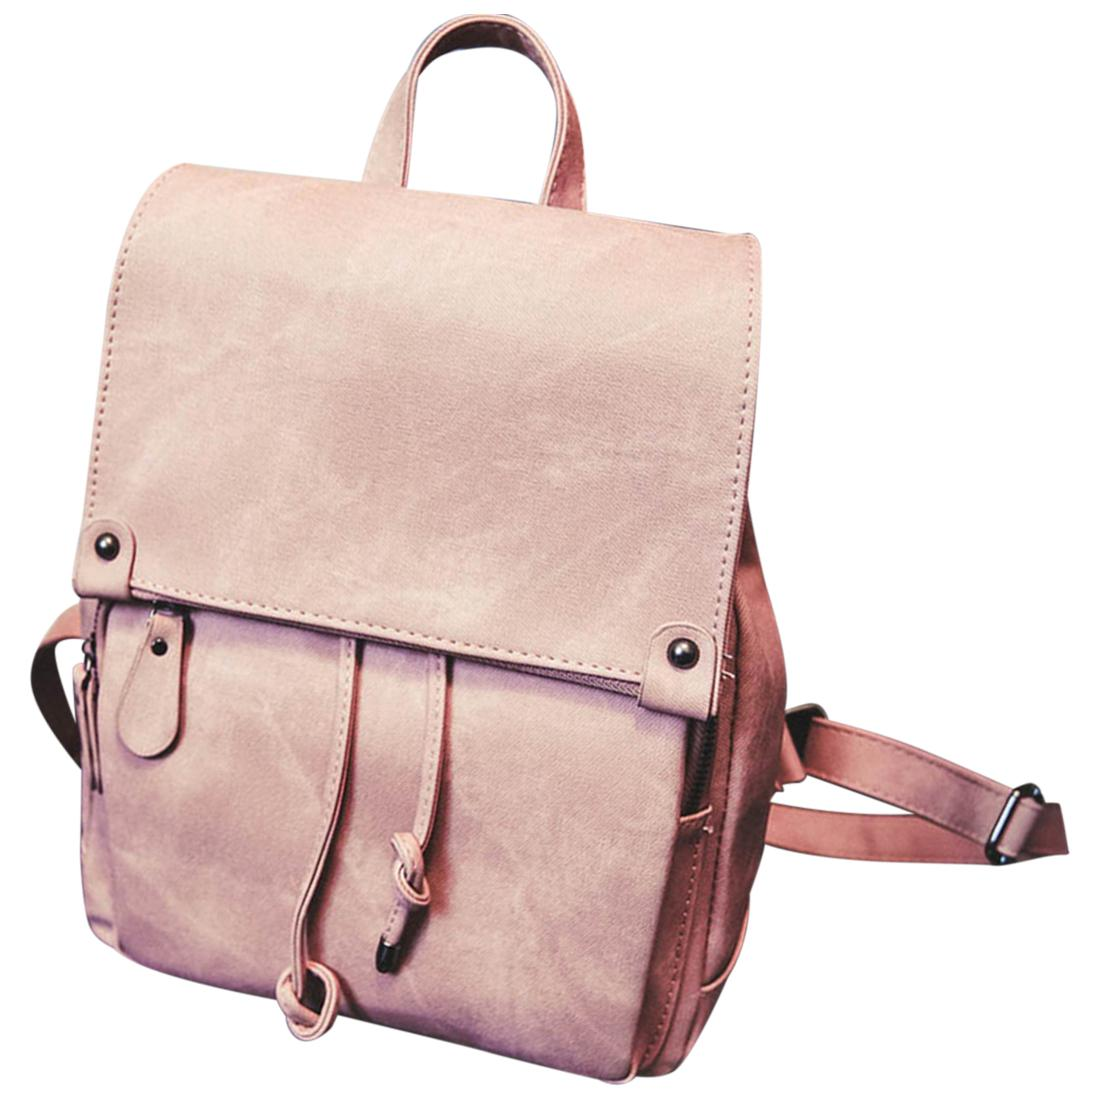 53c951252a Korean Preppy Style Backpack Casual Travel School Shoulders Bag Rucksack  Satchel - Pink